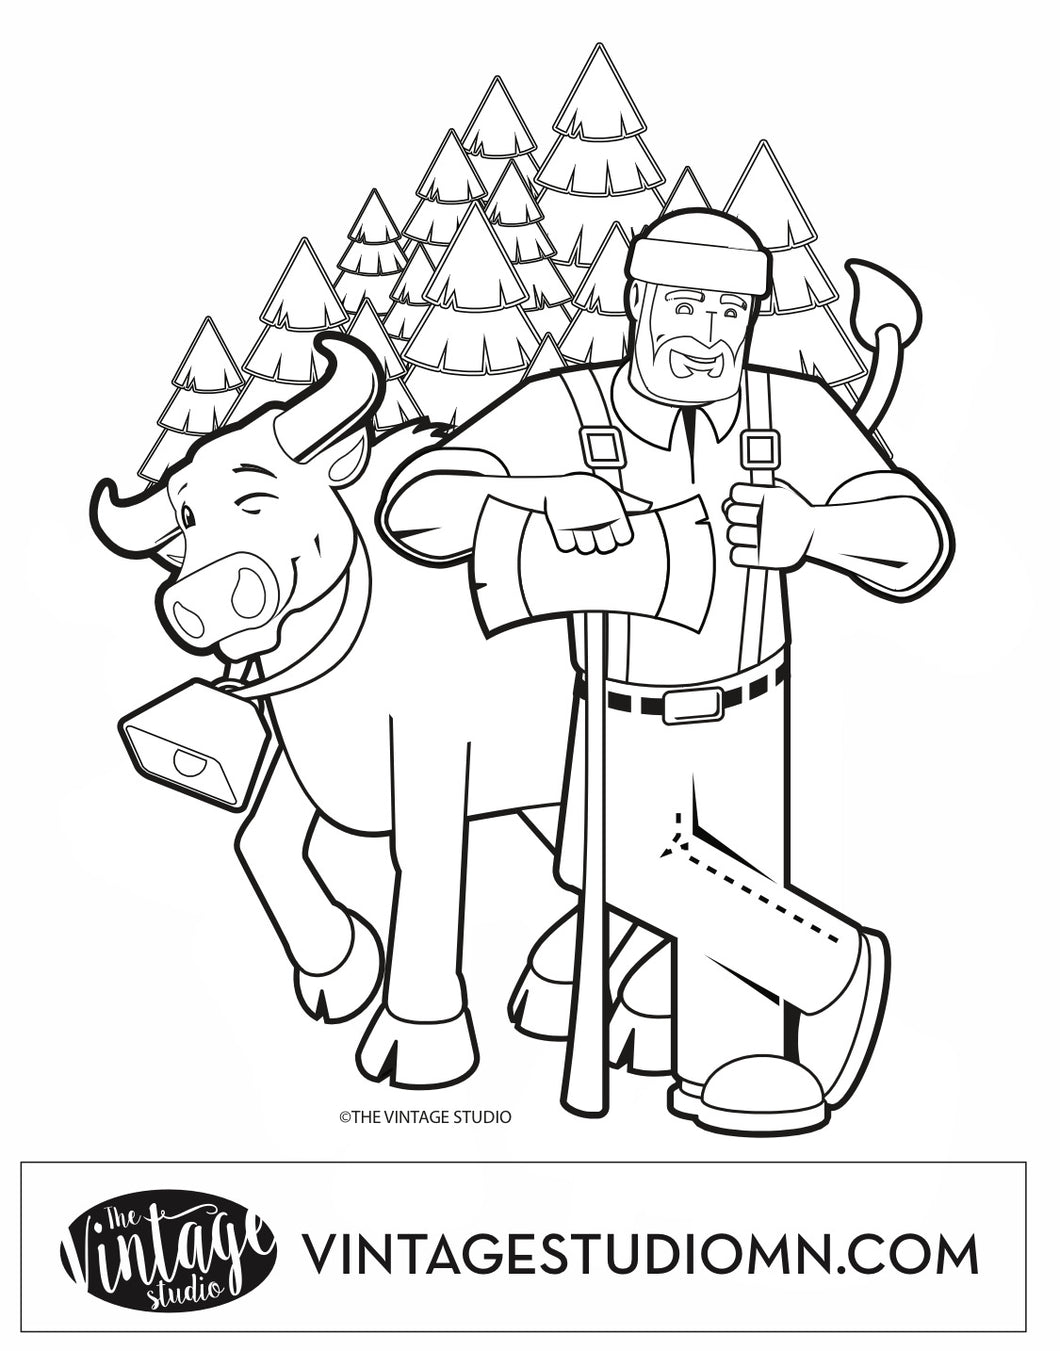 FREE Paul Bunyan and Babe the Blue Ox North Woods Coloring Page